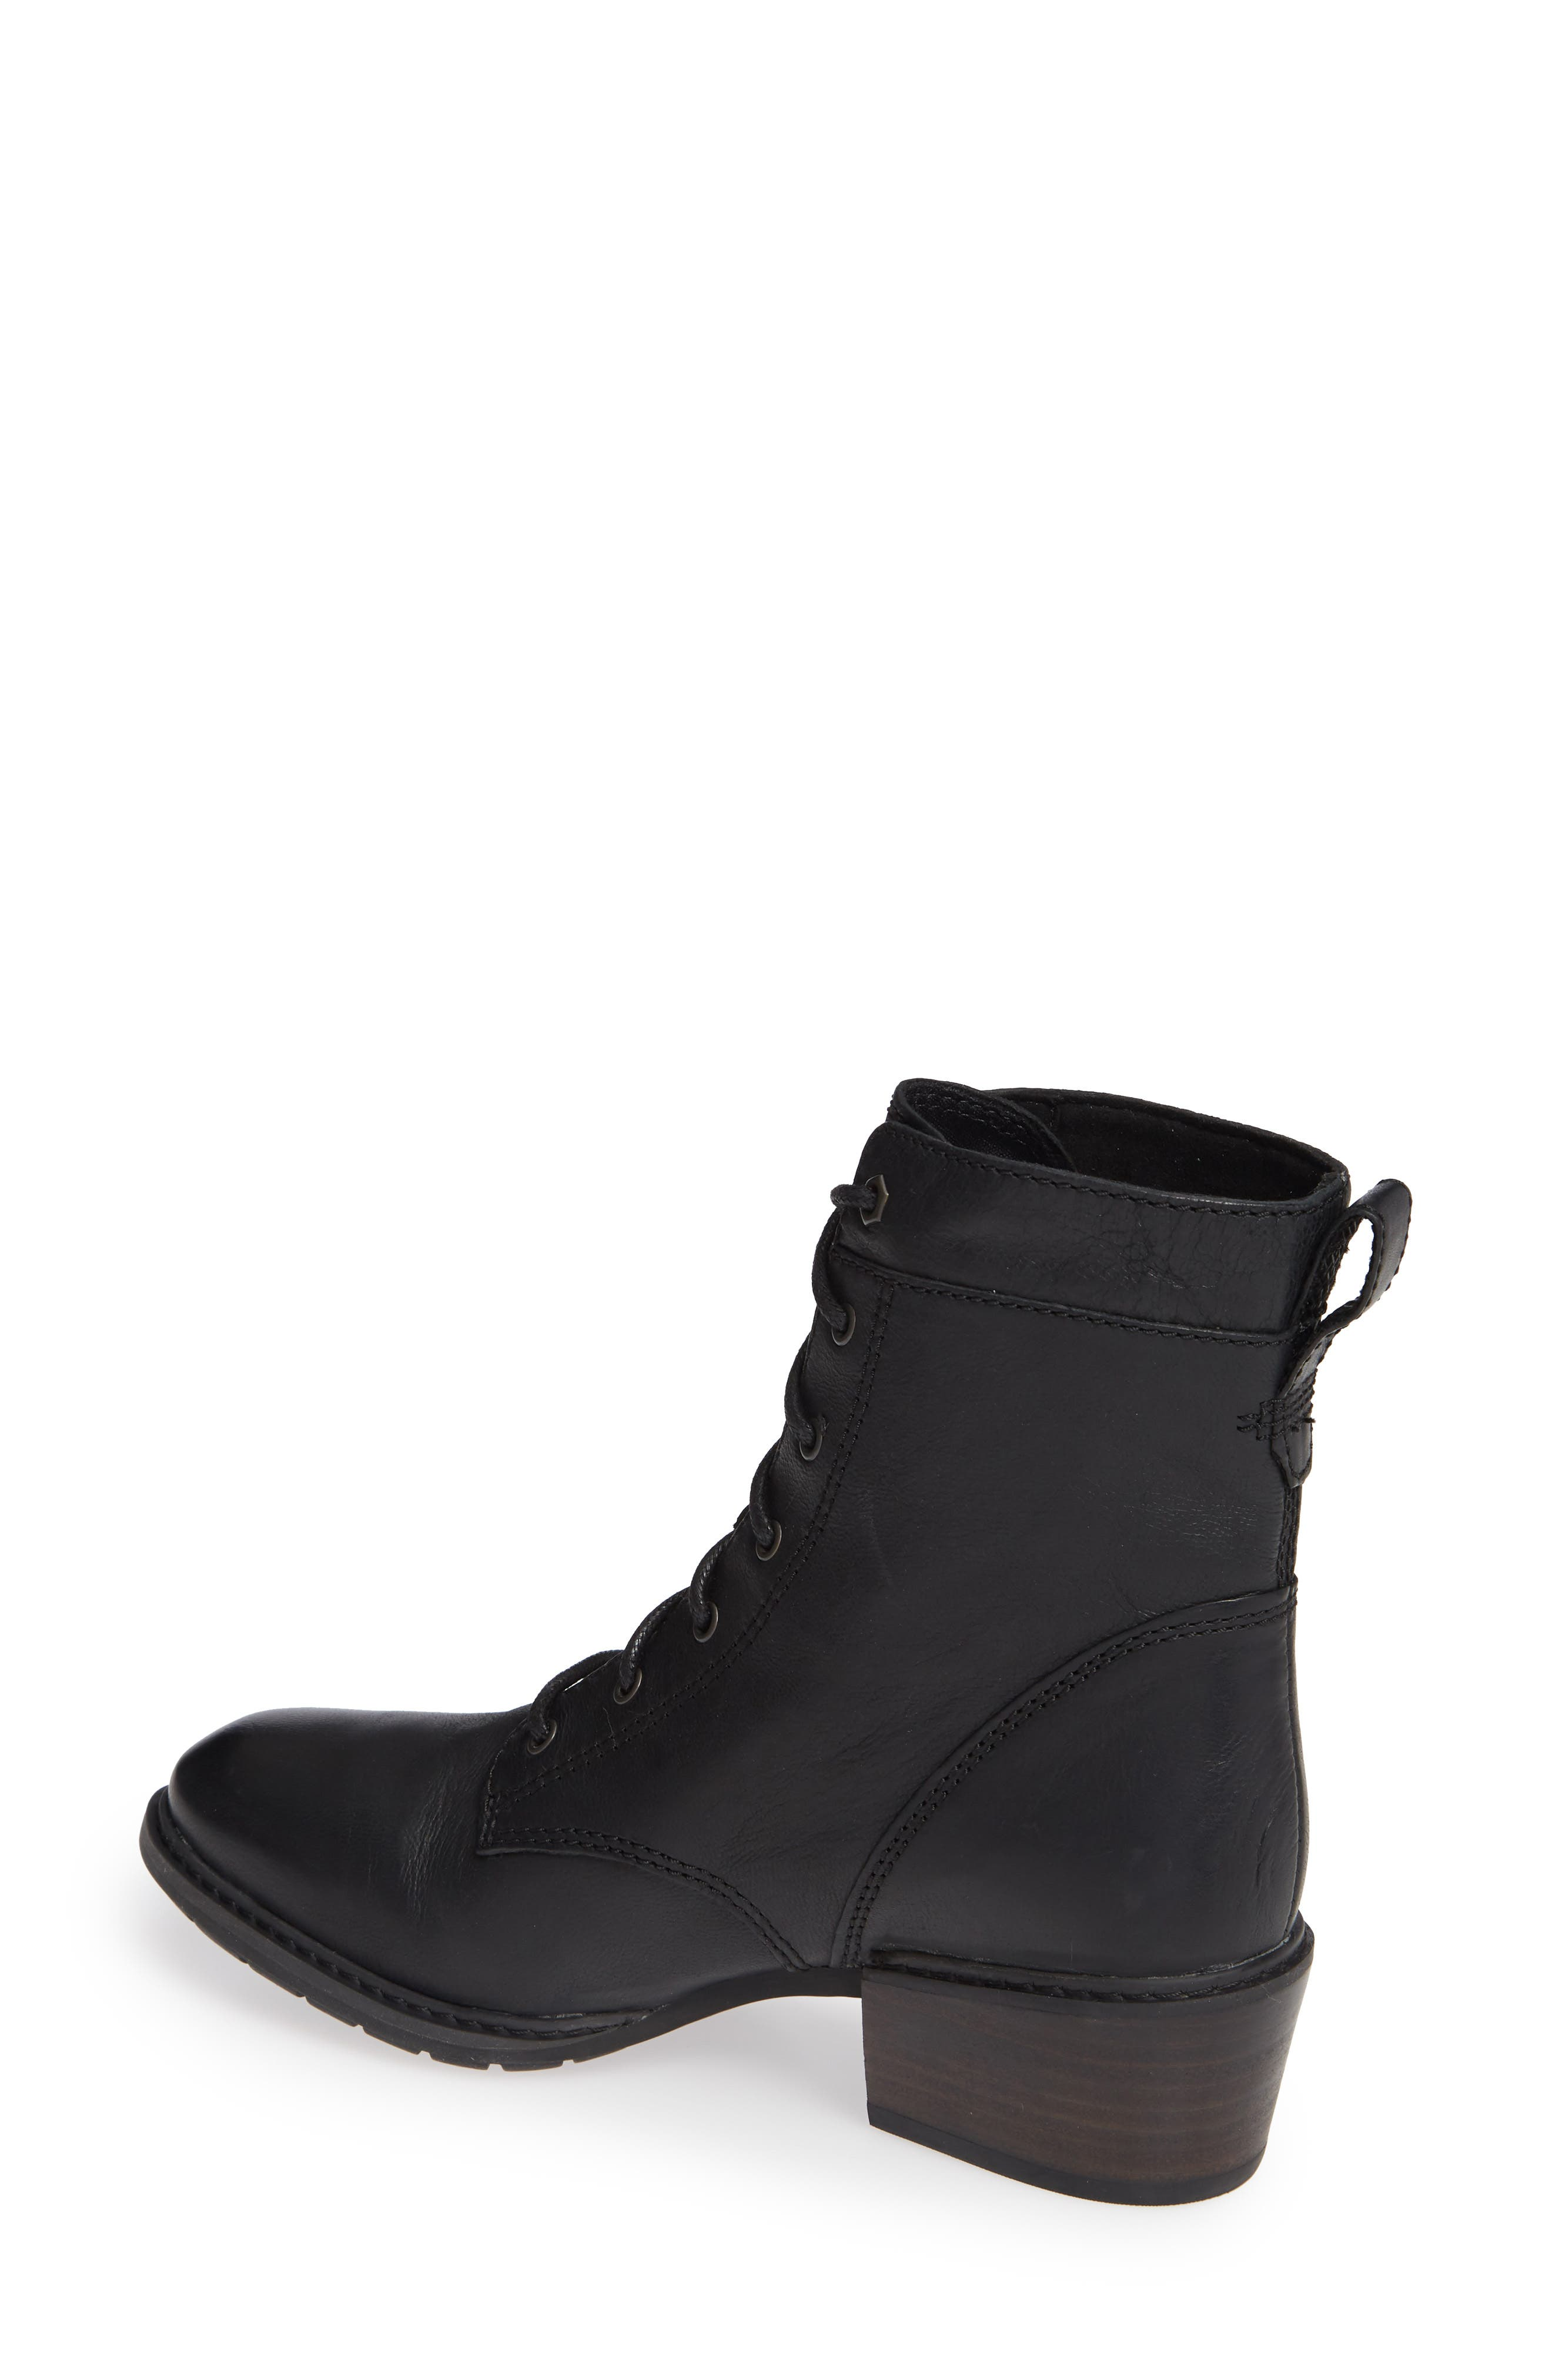 Sutherlin Bay Water Resistant Lace-Up Bootie,                             Alternate thumbnail 2, color,                             JET BLACK LEATHER